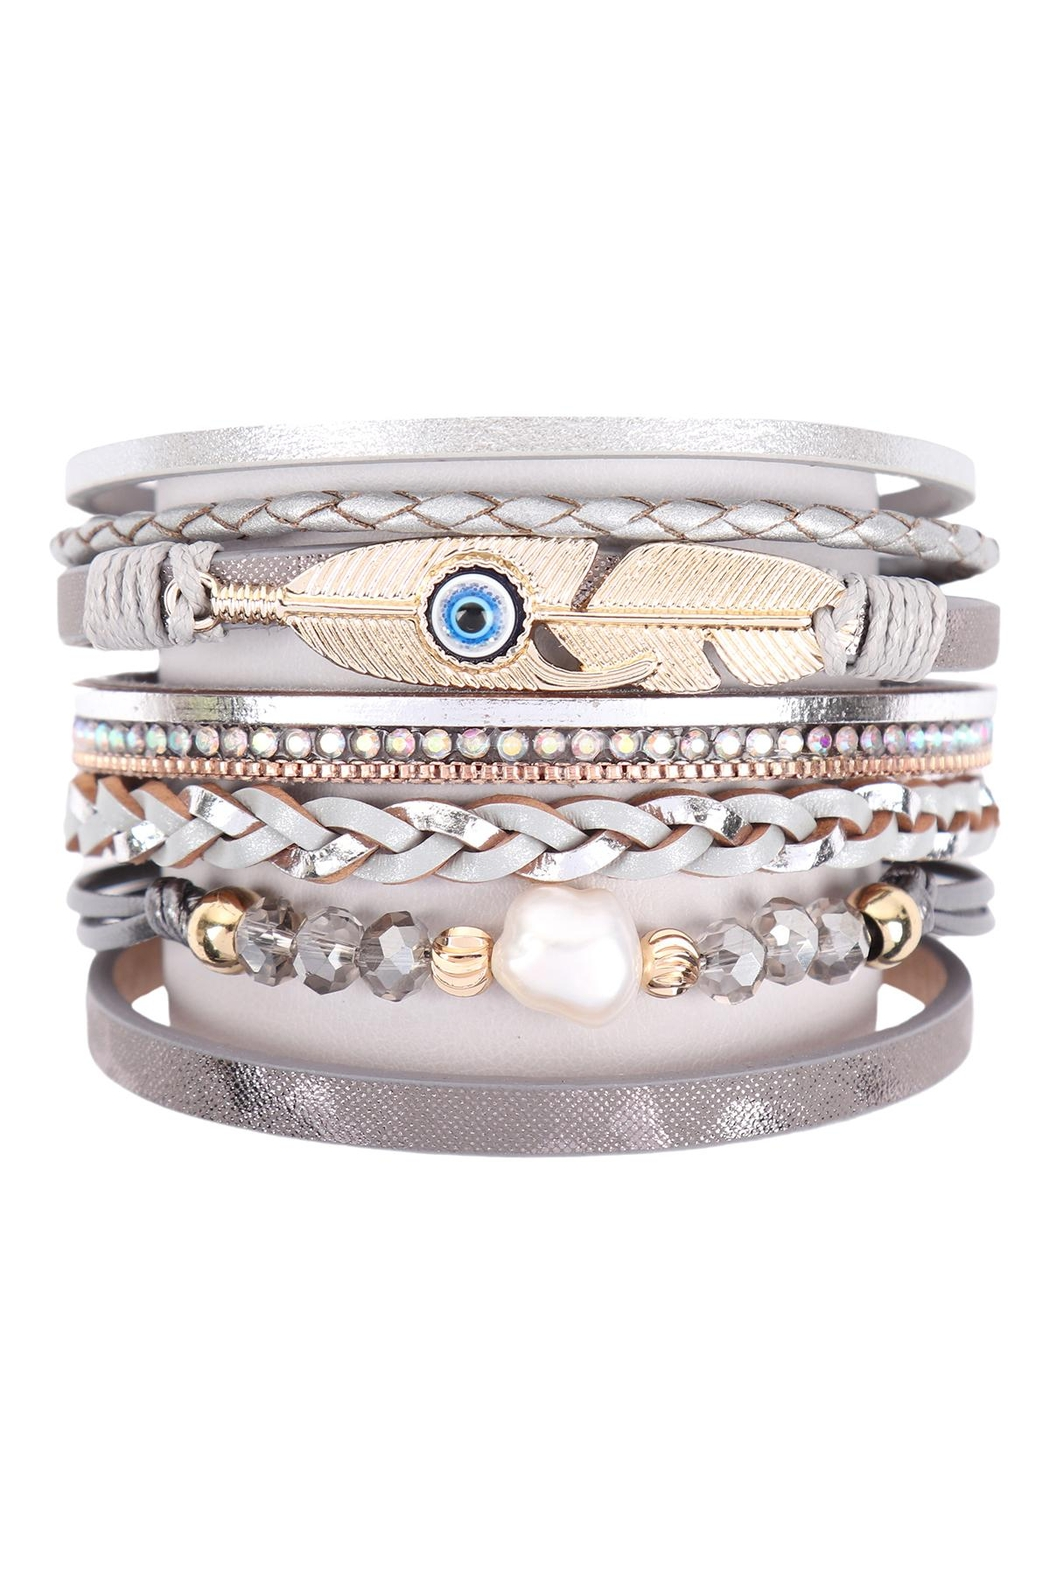 Riah Fashion Leather-Bracelet-With-Feather-And-Evil-Eye-Charm - Main Image